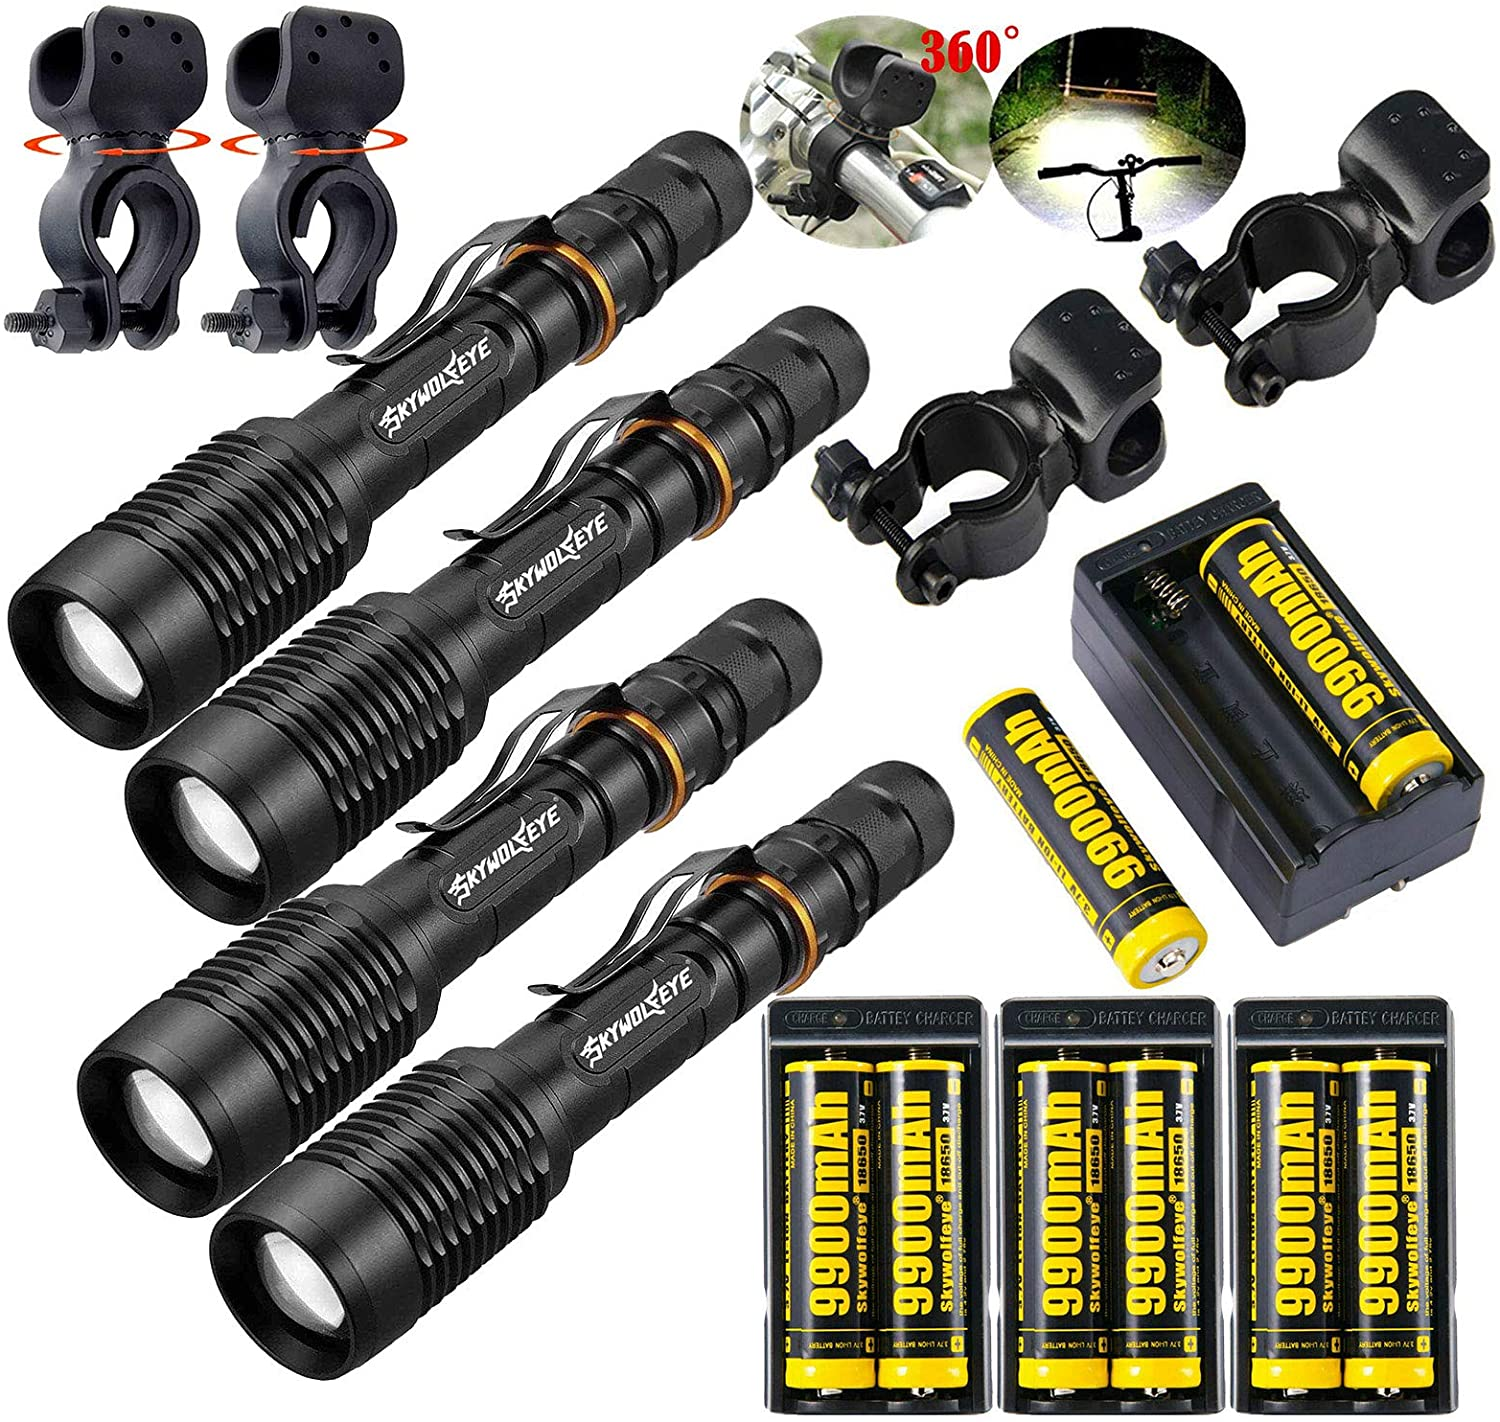 4 Set Police Tactical 350000Lumens 5 Modes 18650 LED Flashlight Waterproof Aluminum Zoom Torch Rechargeable Batteries Dual Smart Battery Chargers Bike clip for Camping Hiking Running Outdoor